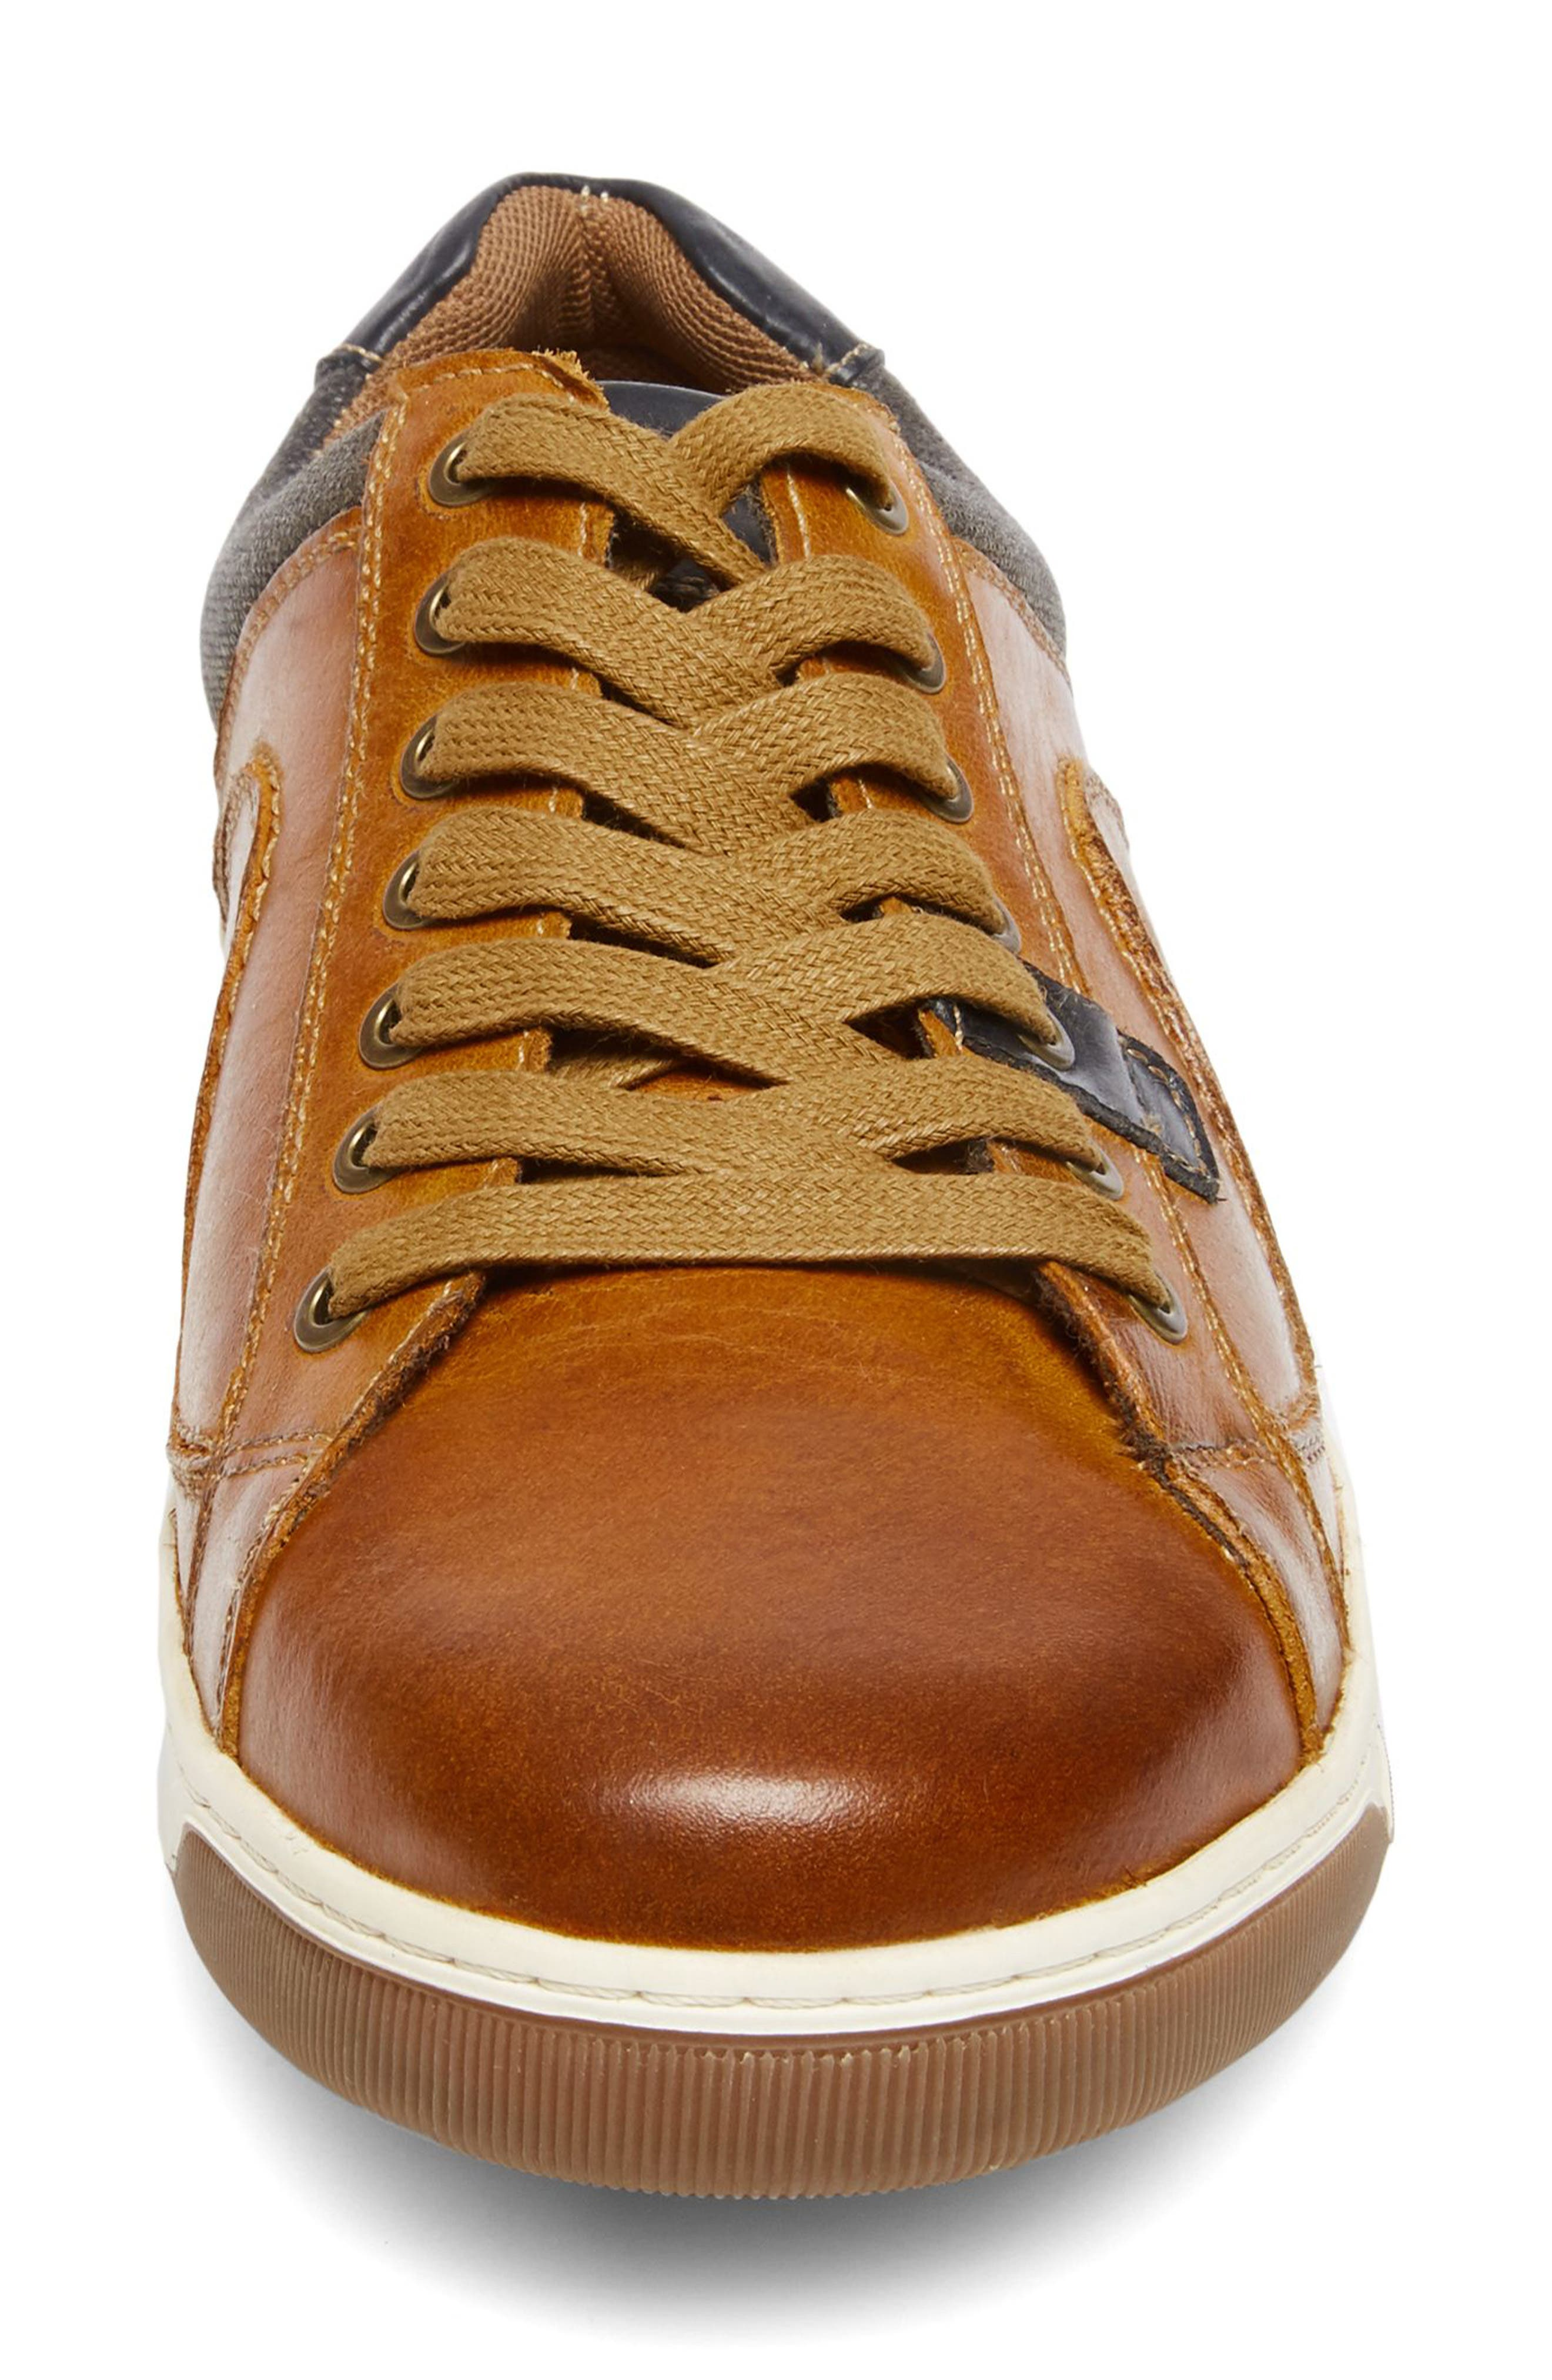 Chater Low Top Sneaker,                             Alternate thumbnail 8, color,